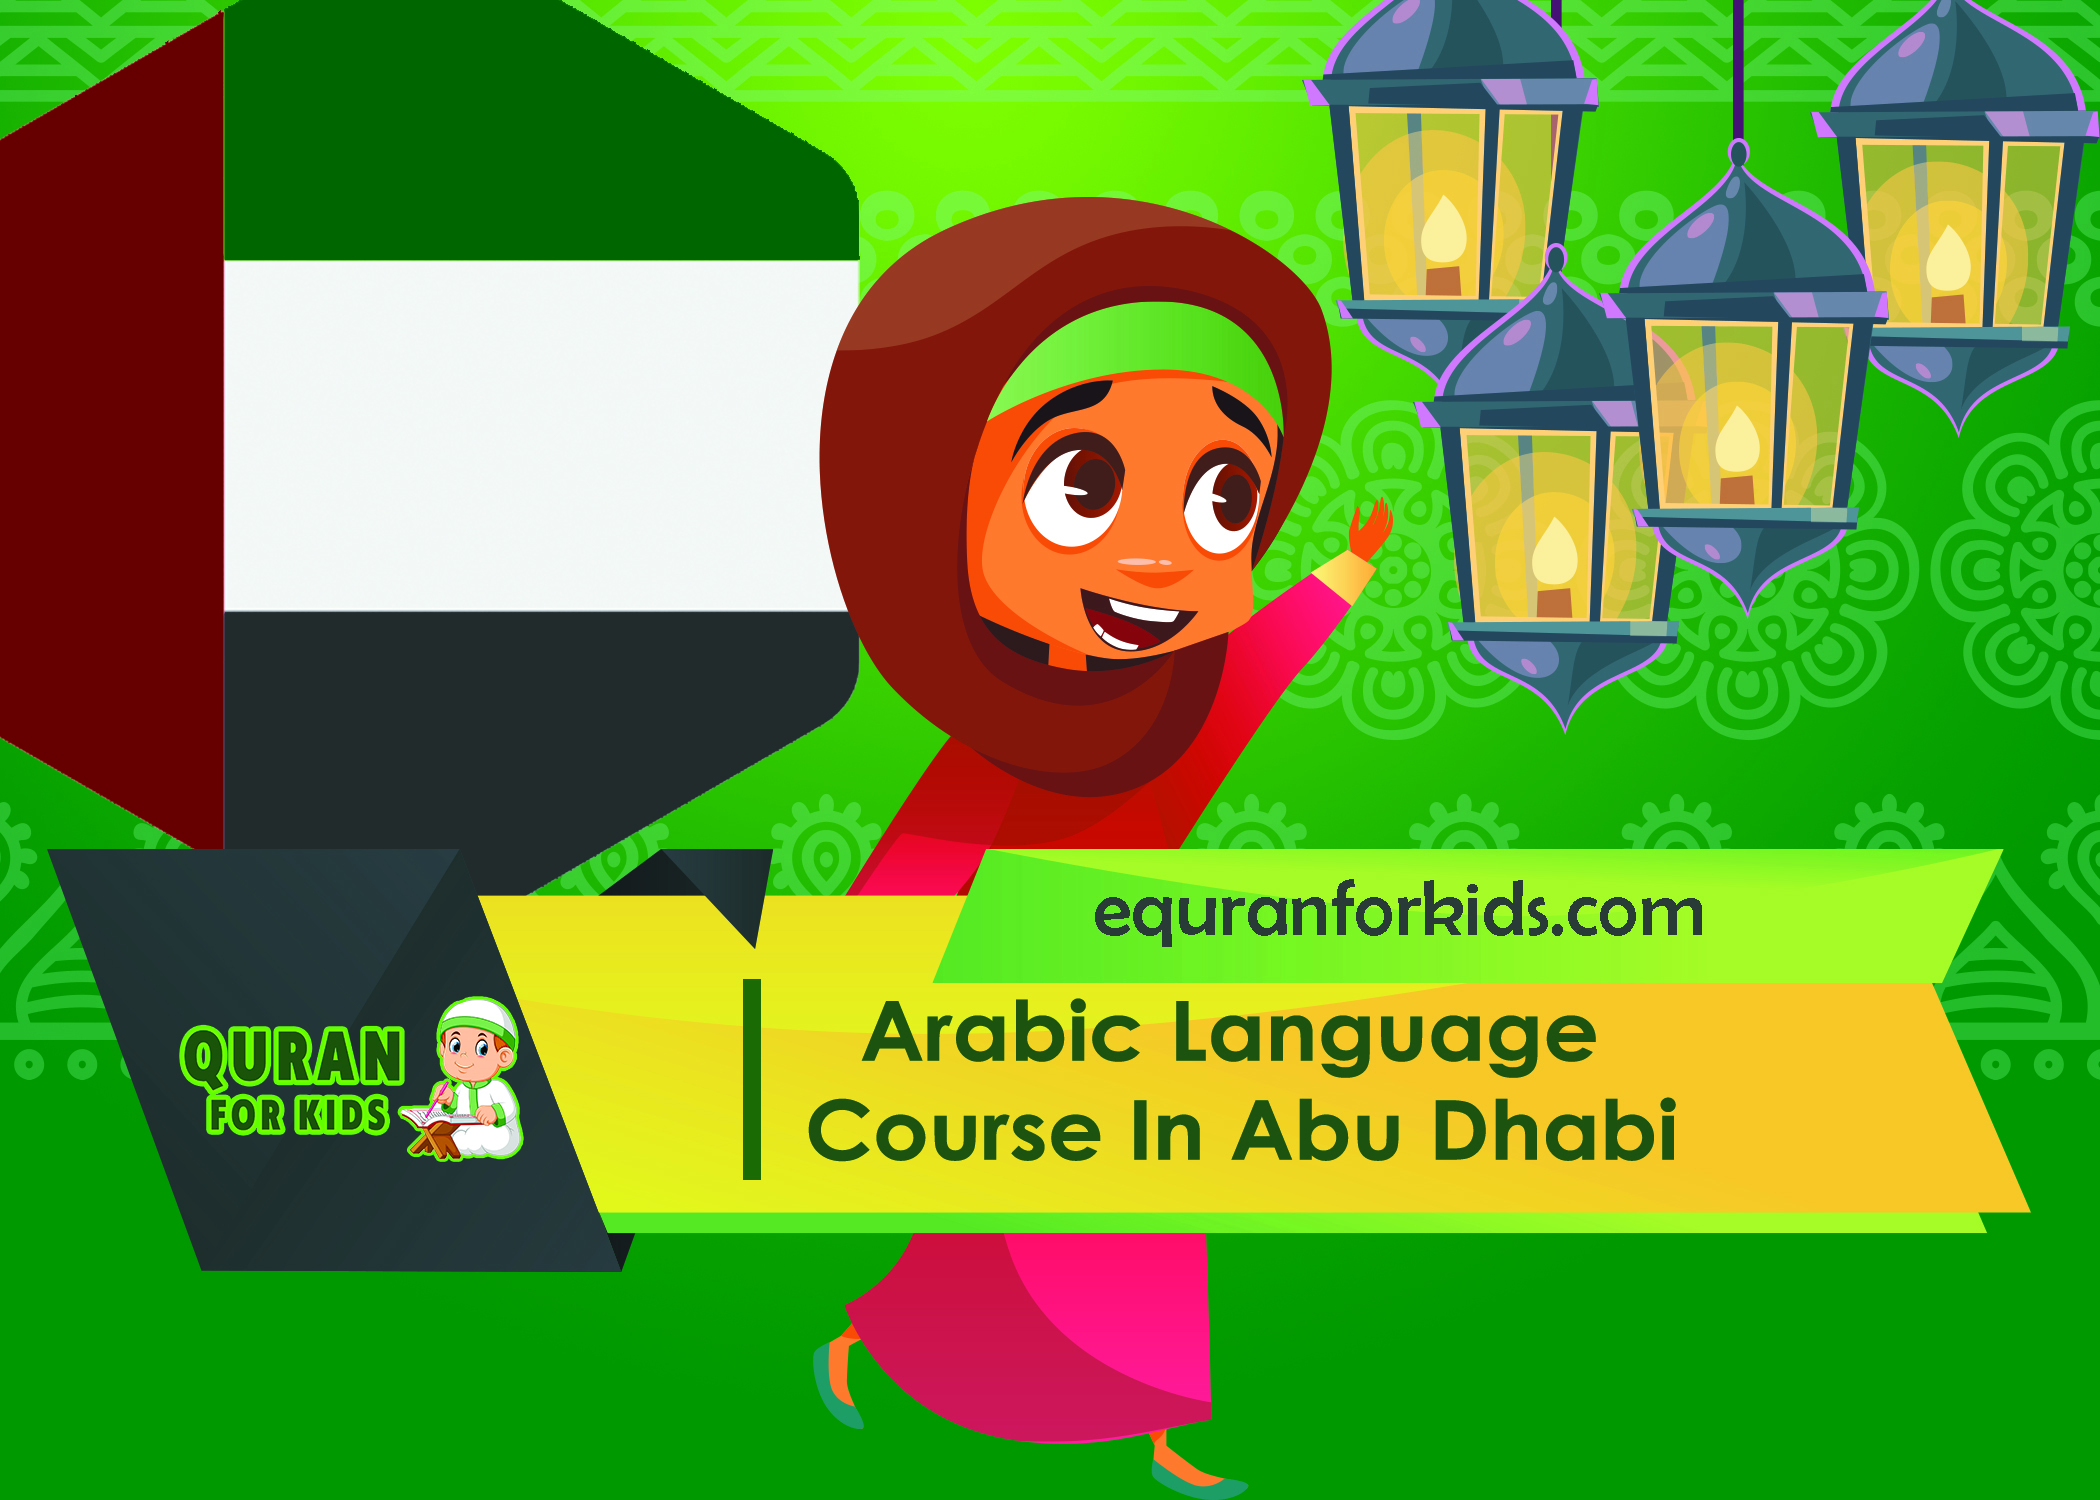 Arabic Language Course in Abu Dhabi